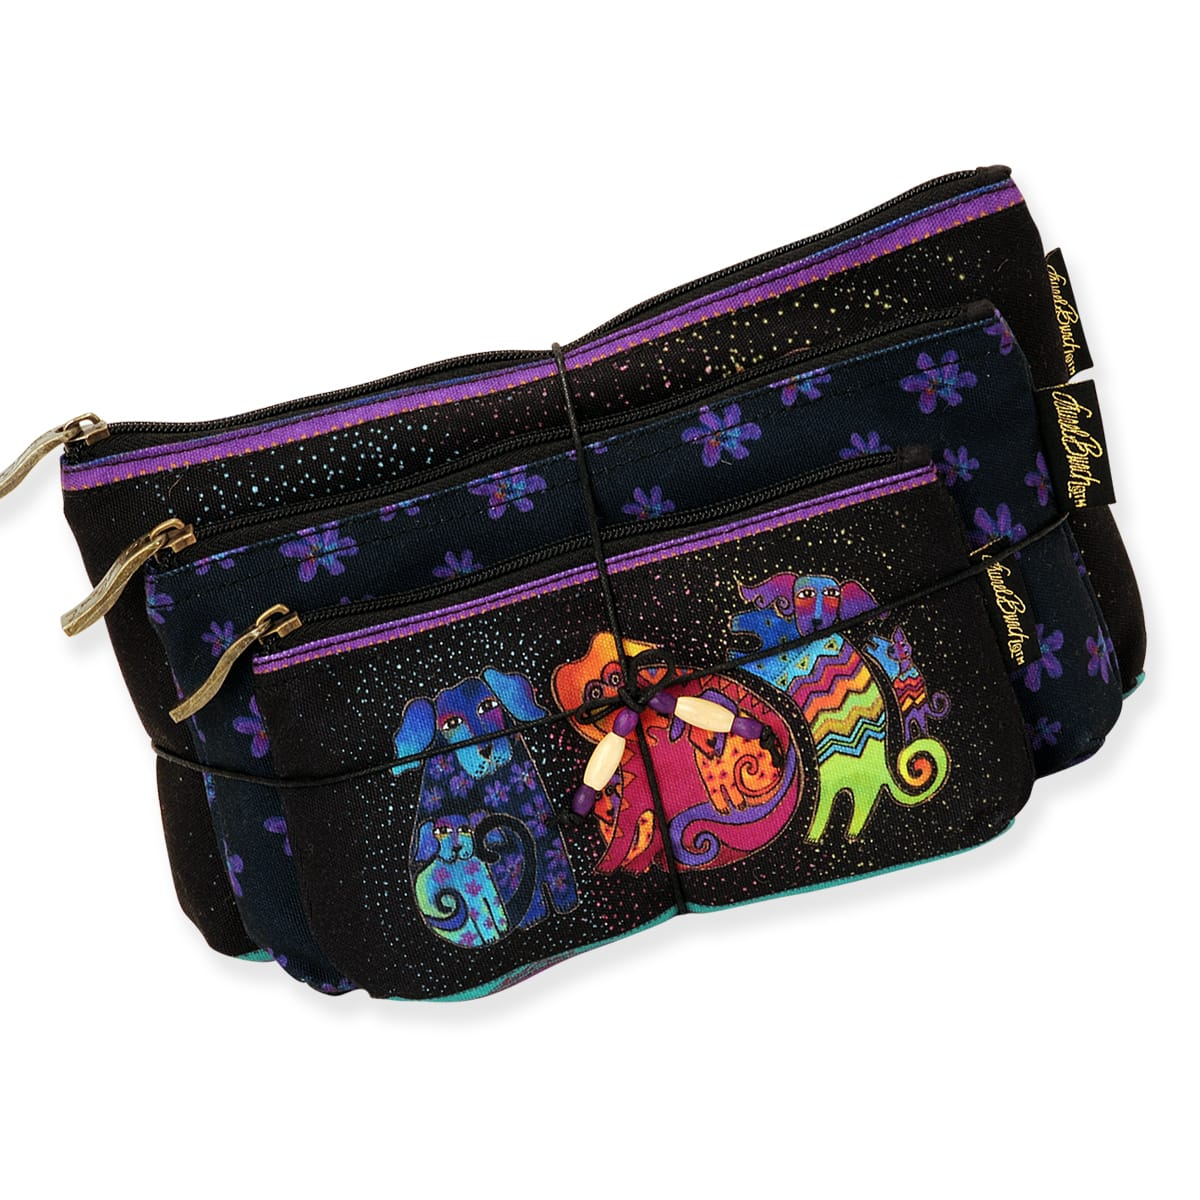 Dog & Doggies  3-In-1 Cosmetic Set by Laurel Burch